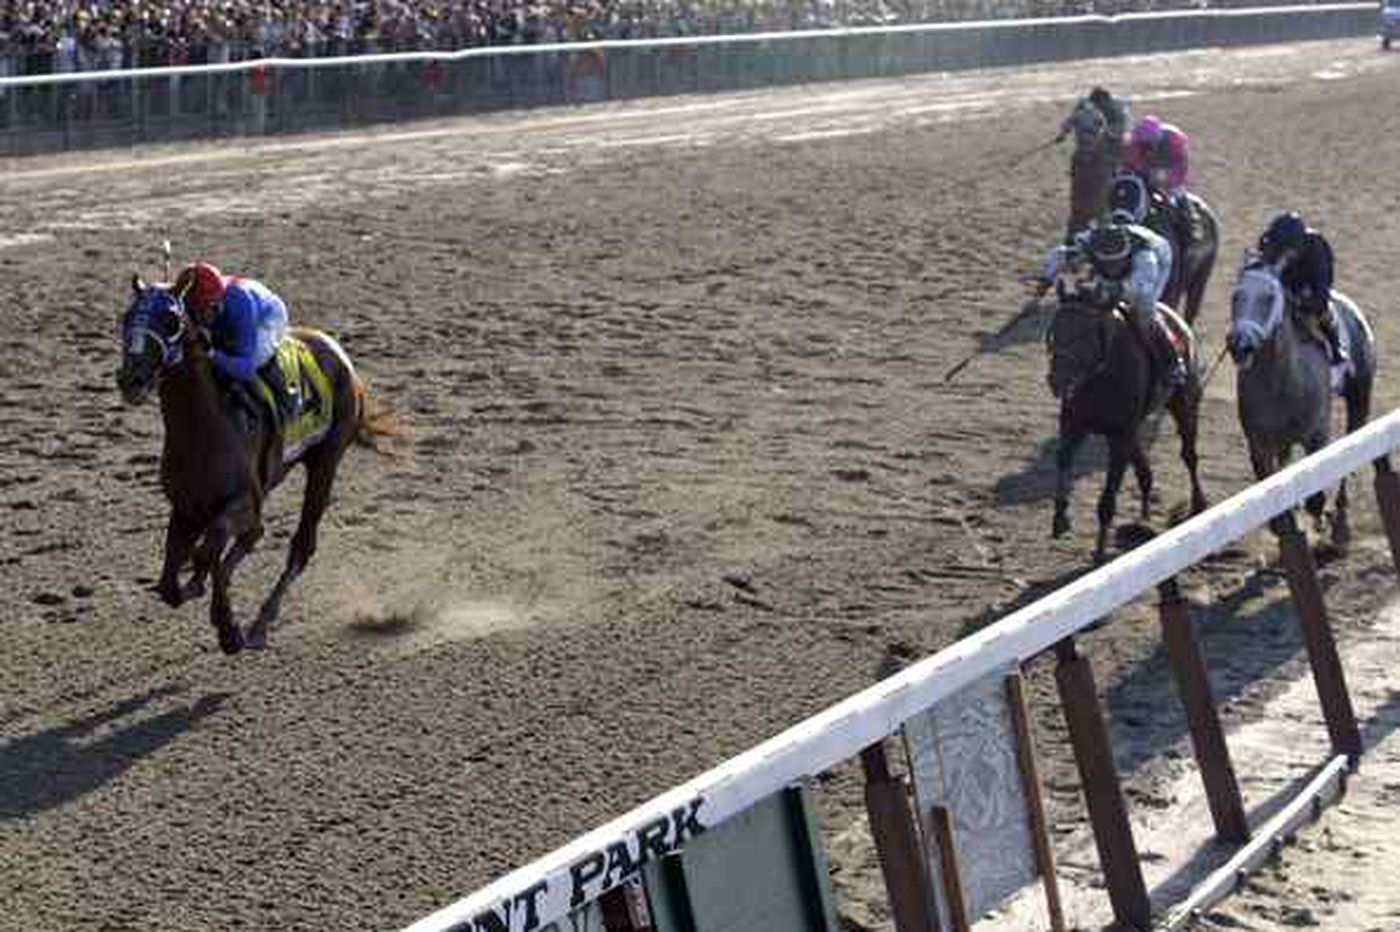 Summer Bird takes the Belmont